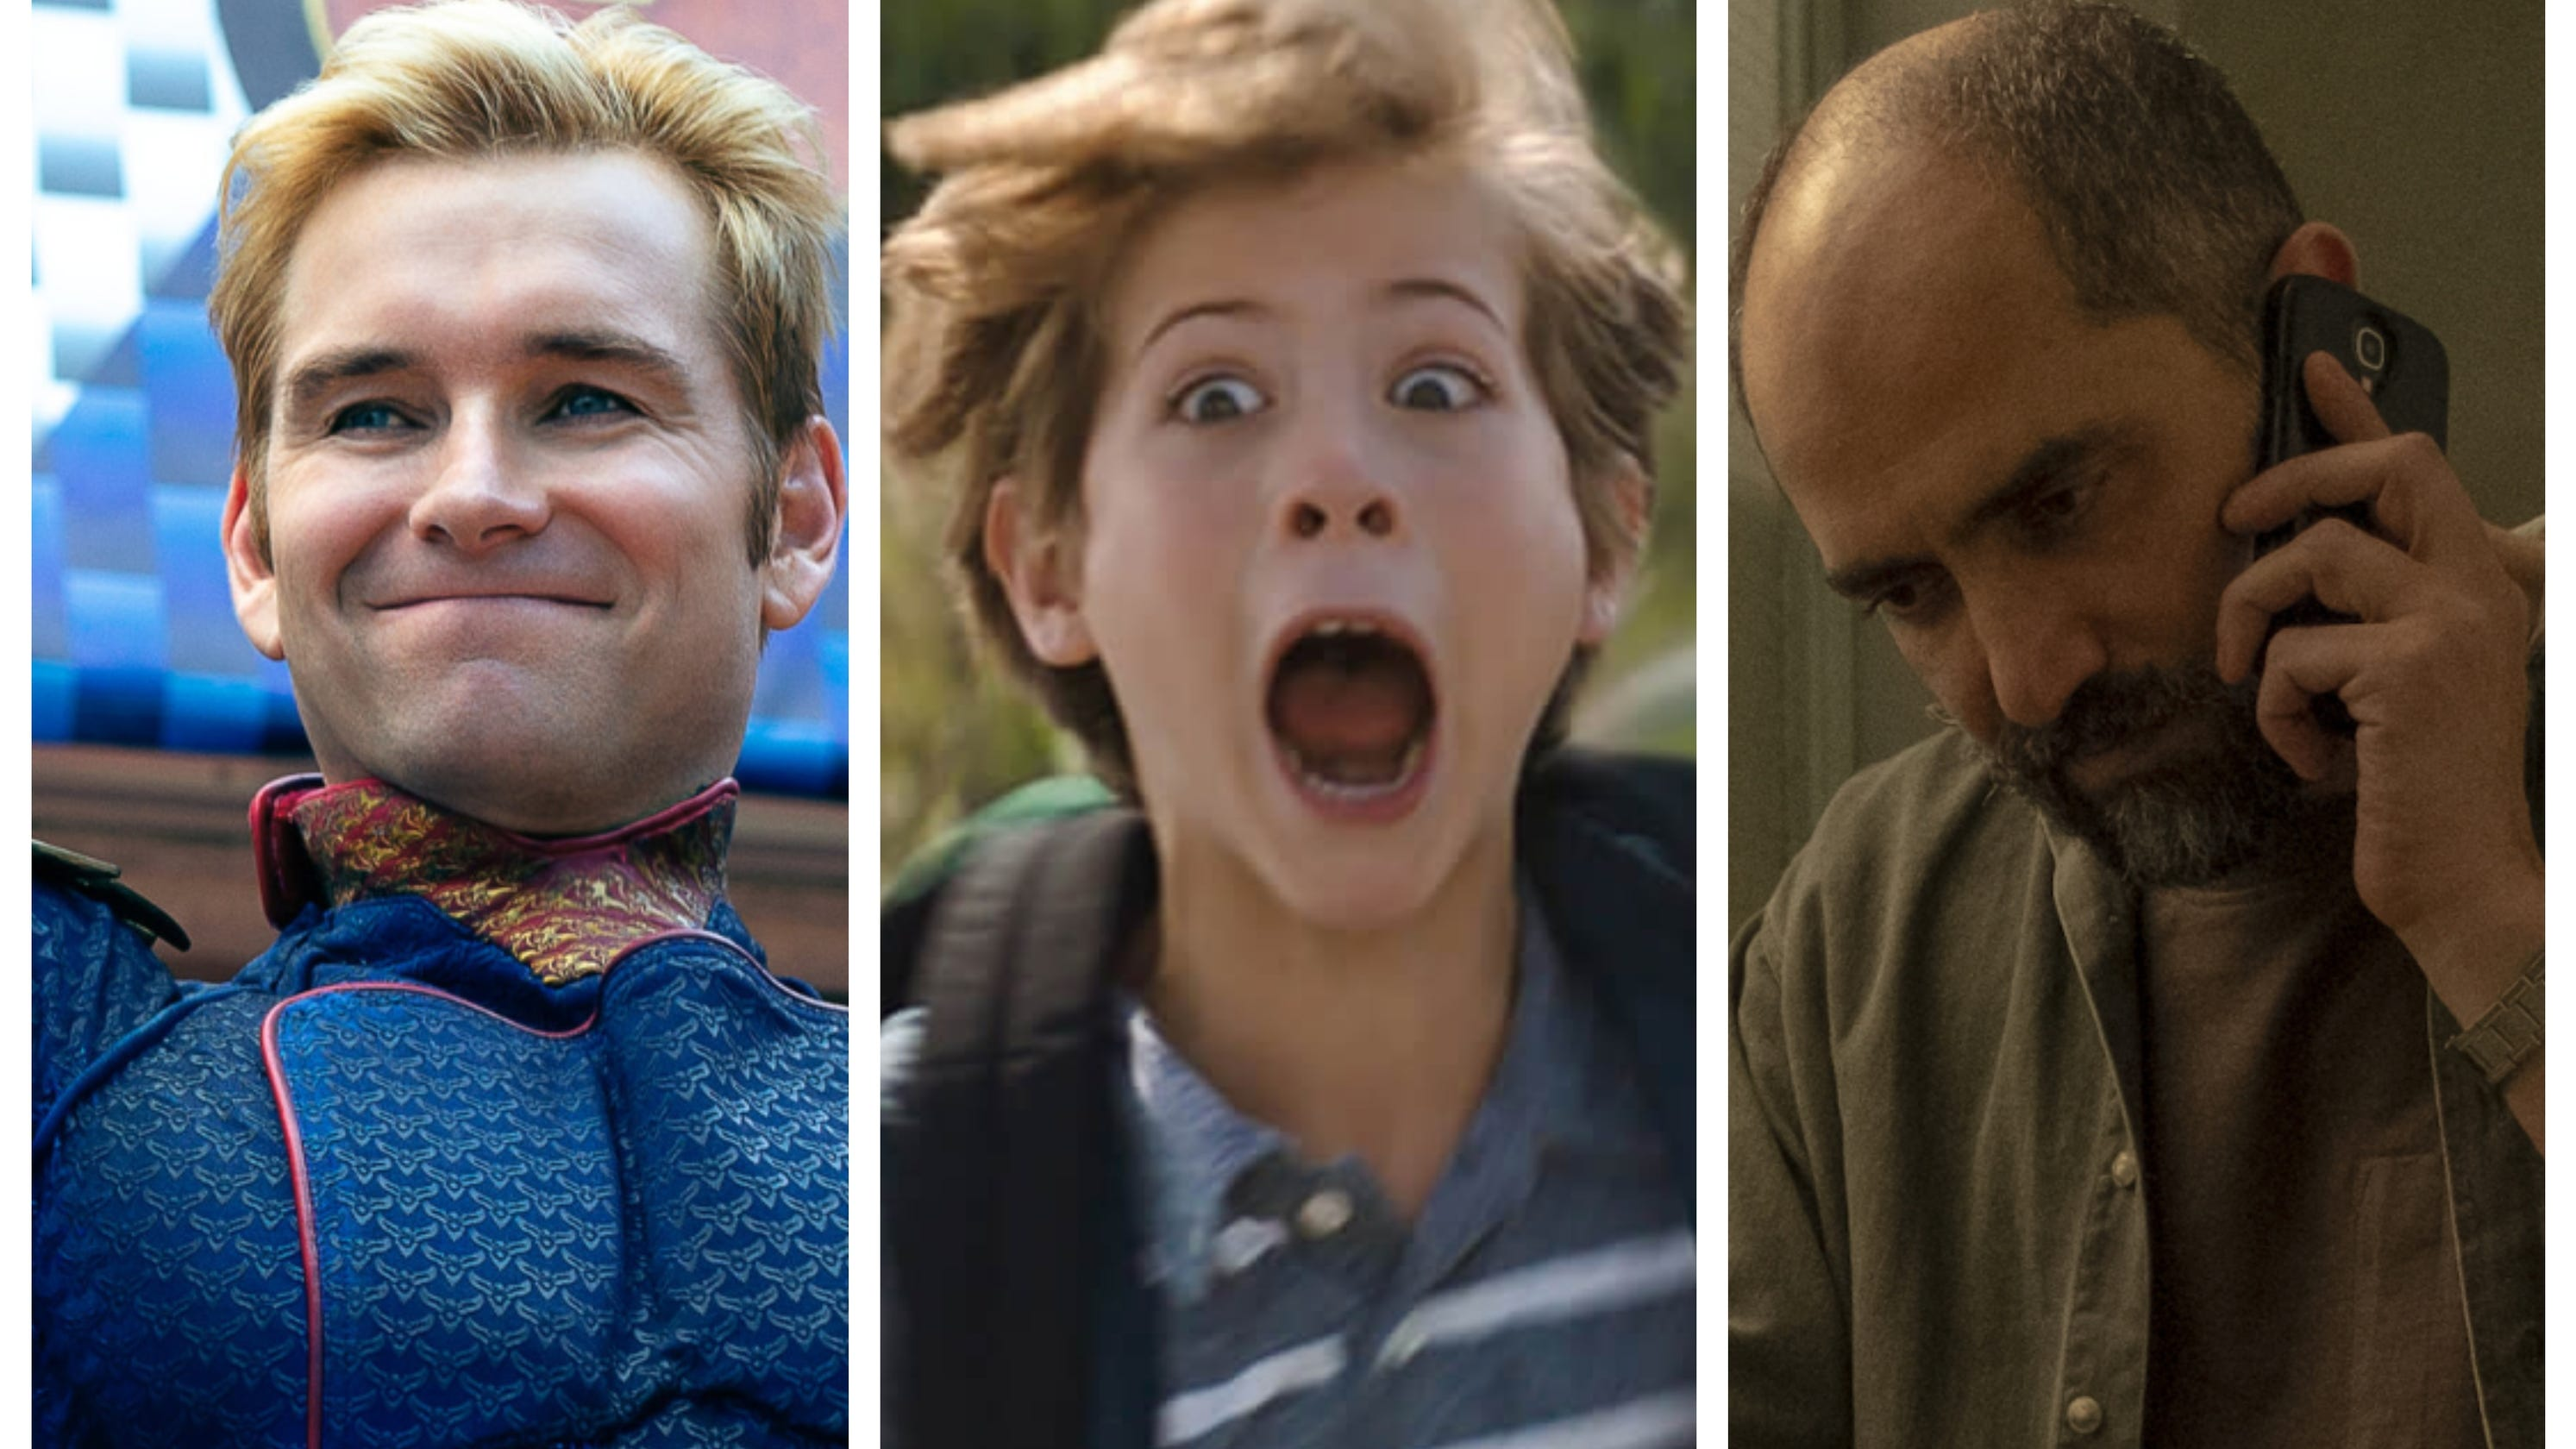 Meet the 'Boys' of summer on HBO, Amazon and the big screen